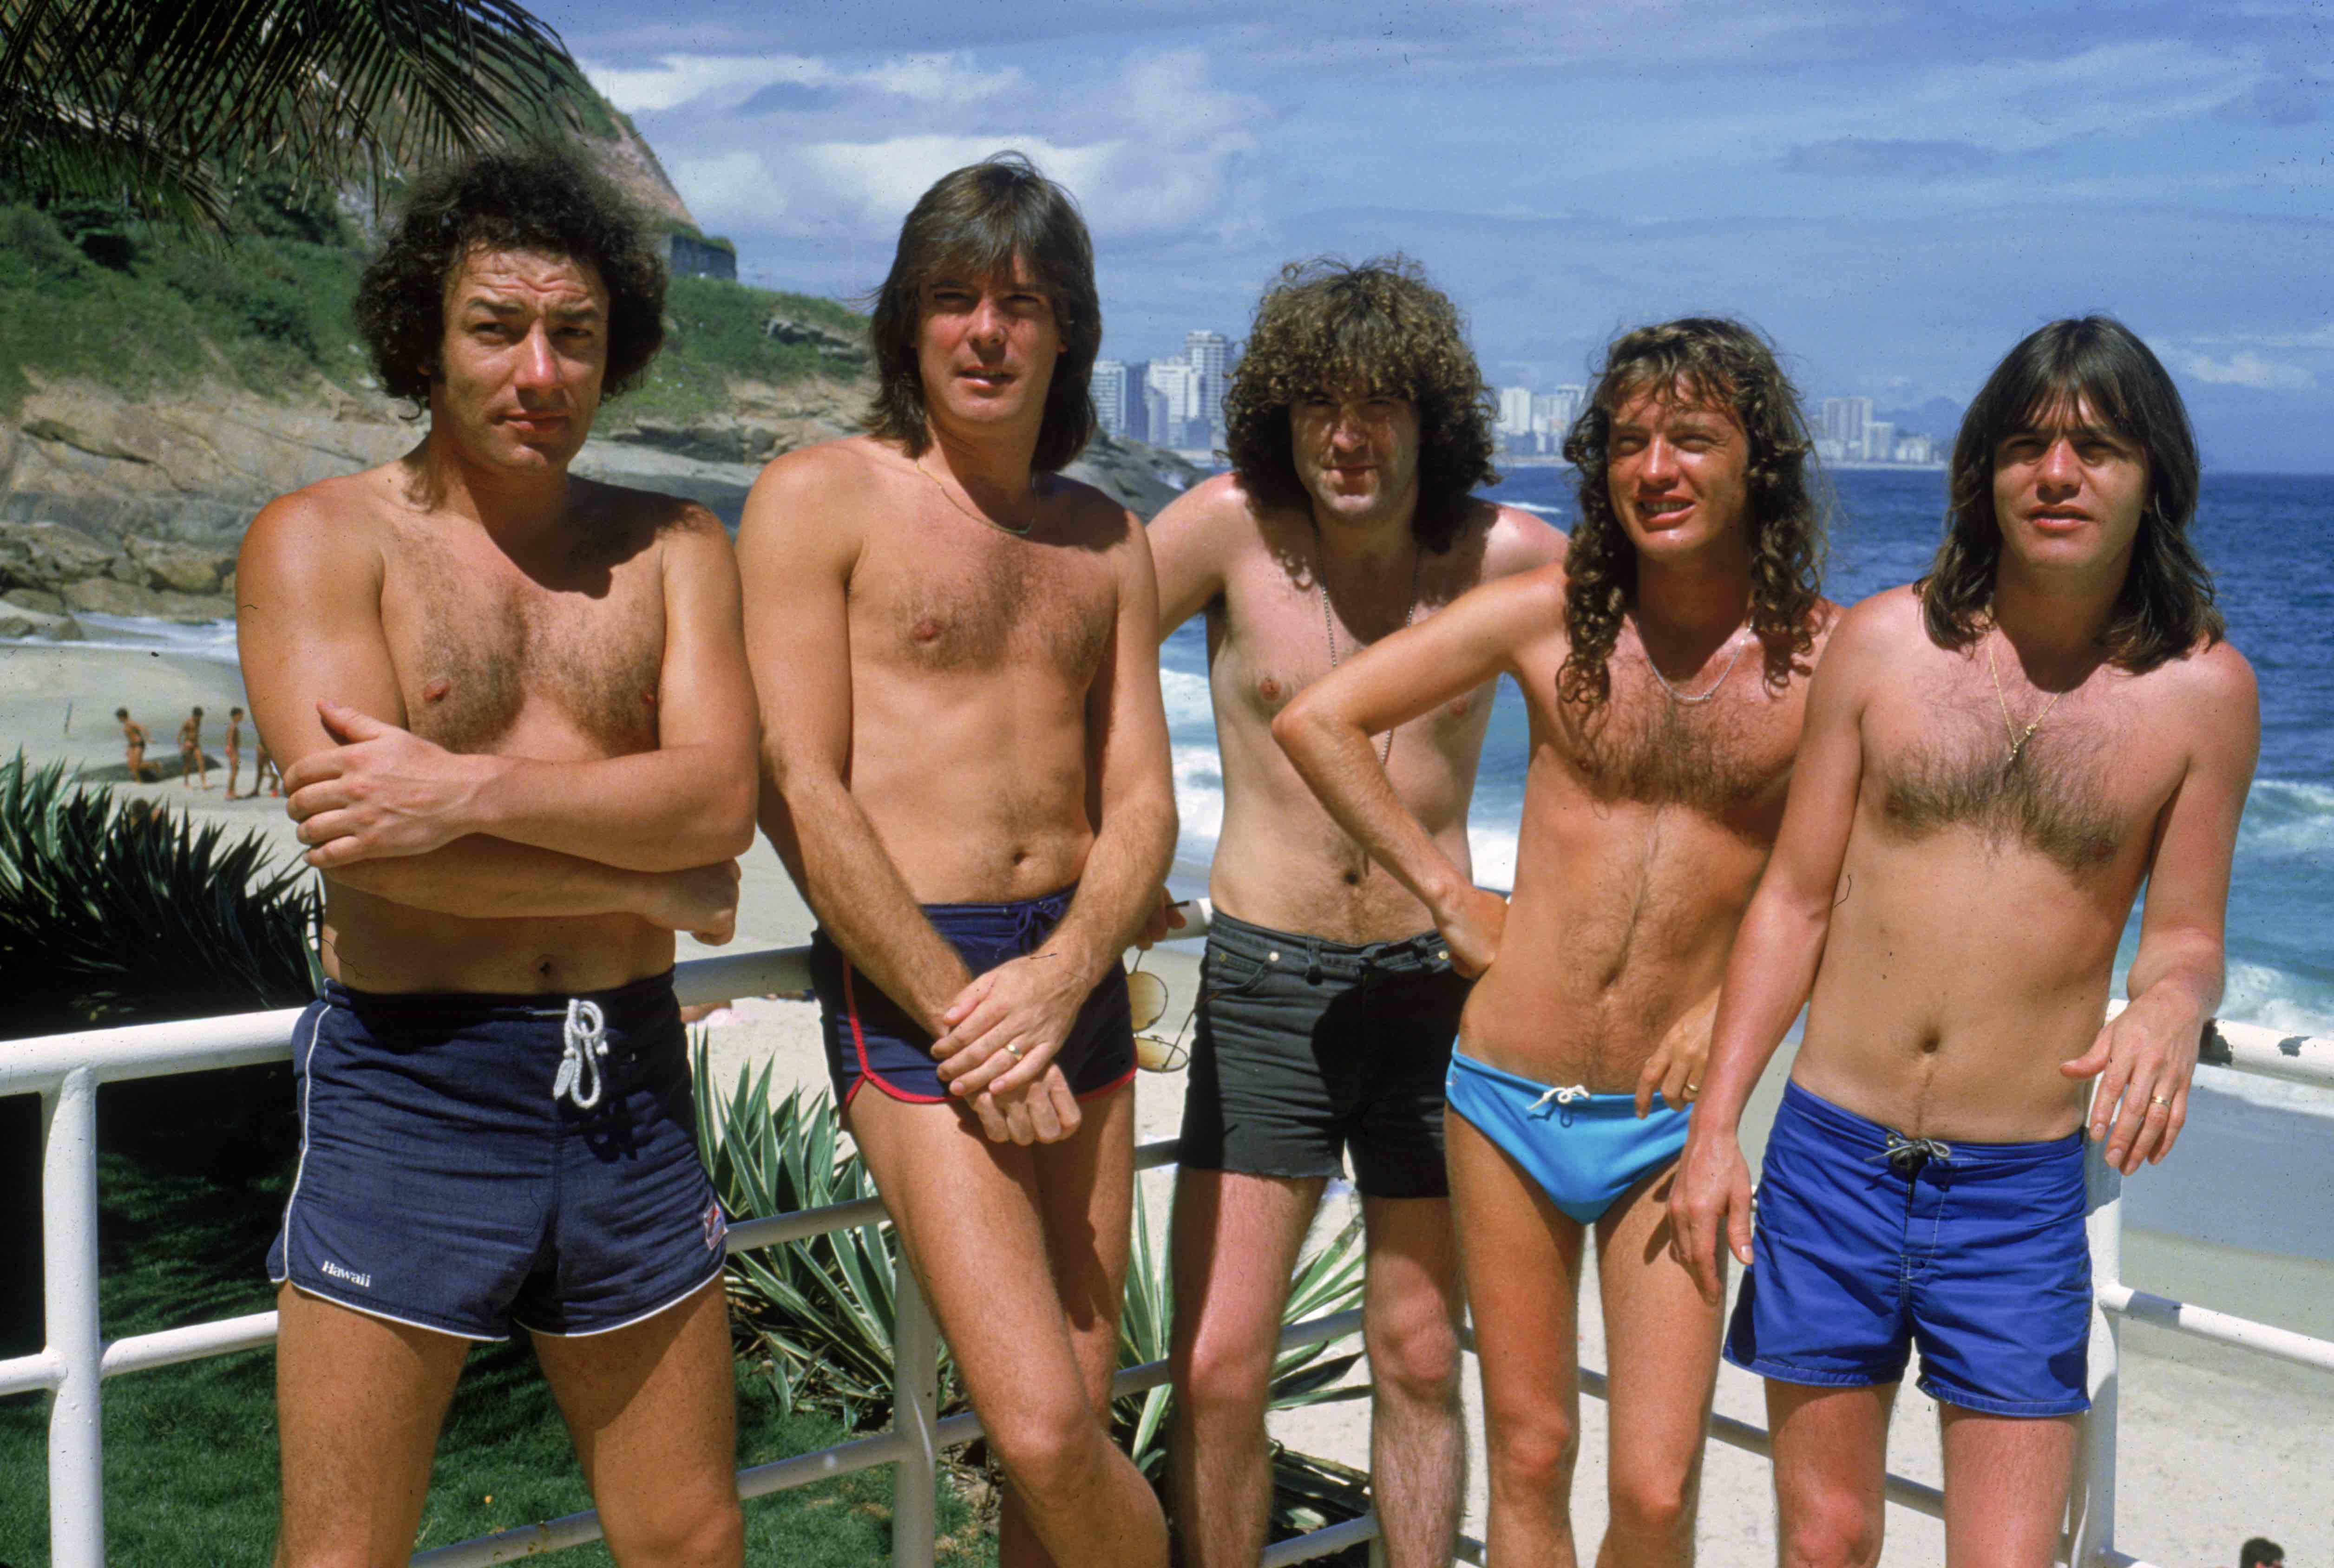 Hard rock group AC/DC at the beach in Ipanema, Brazil during a South American tour, January 1985. Left to right: Brian Johnso